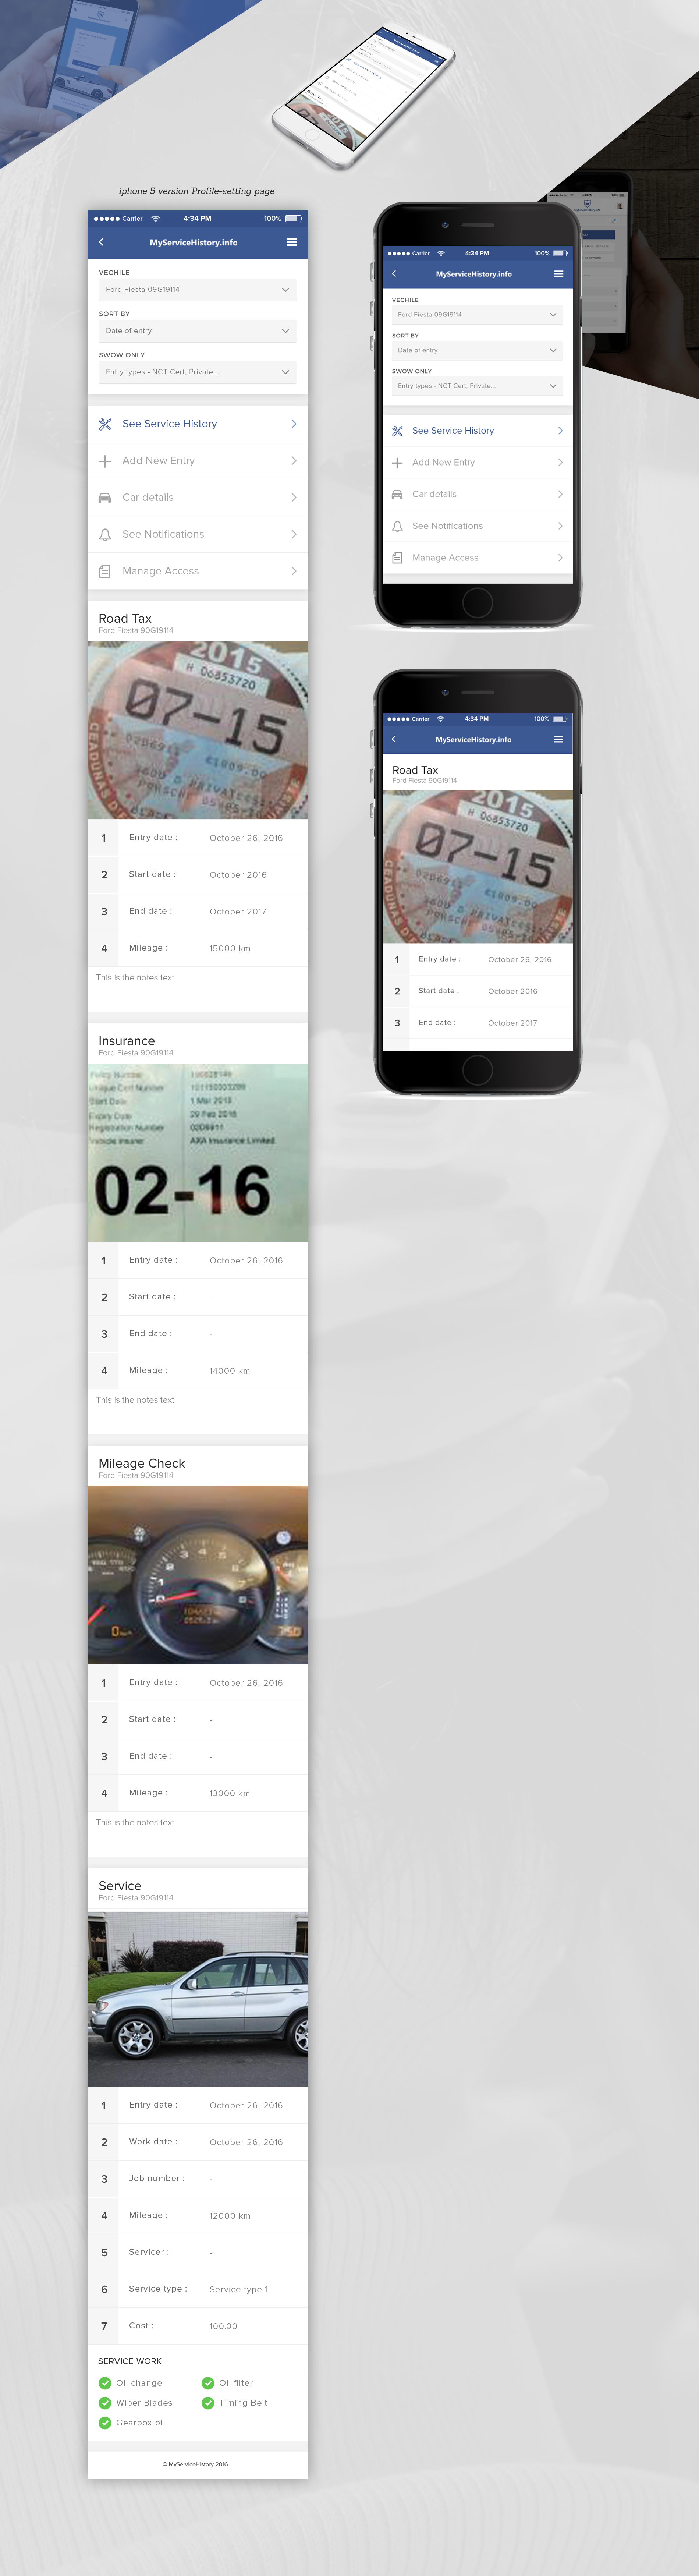 "Modern contemporary mobile optimized design needed for ""techical"" website in the automotive space."